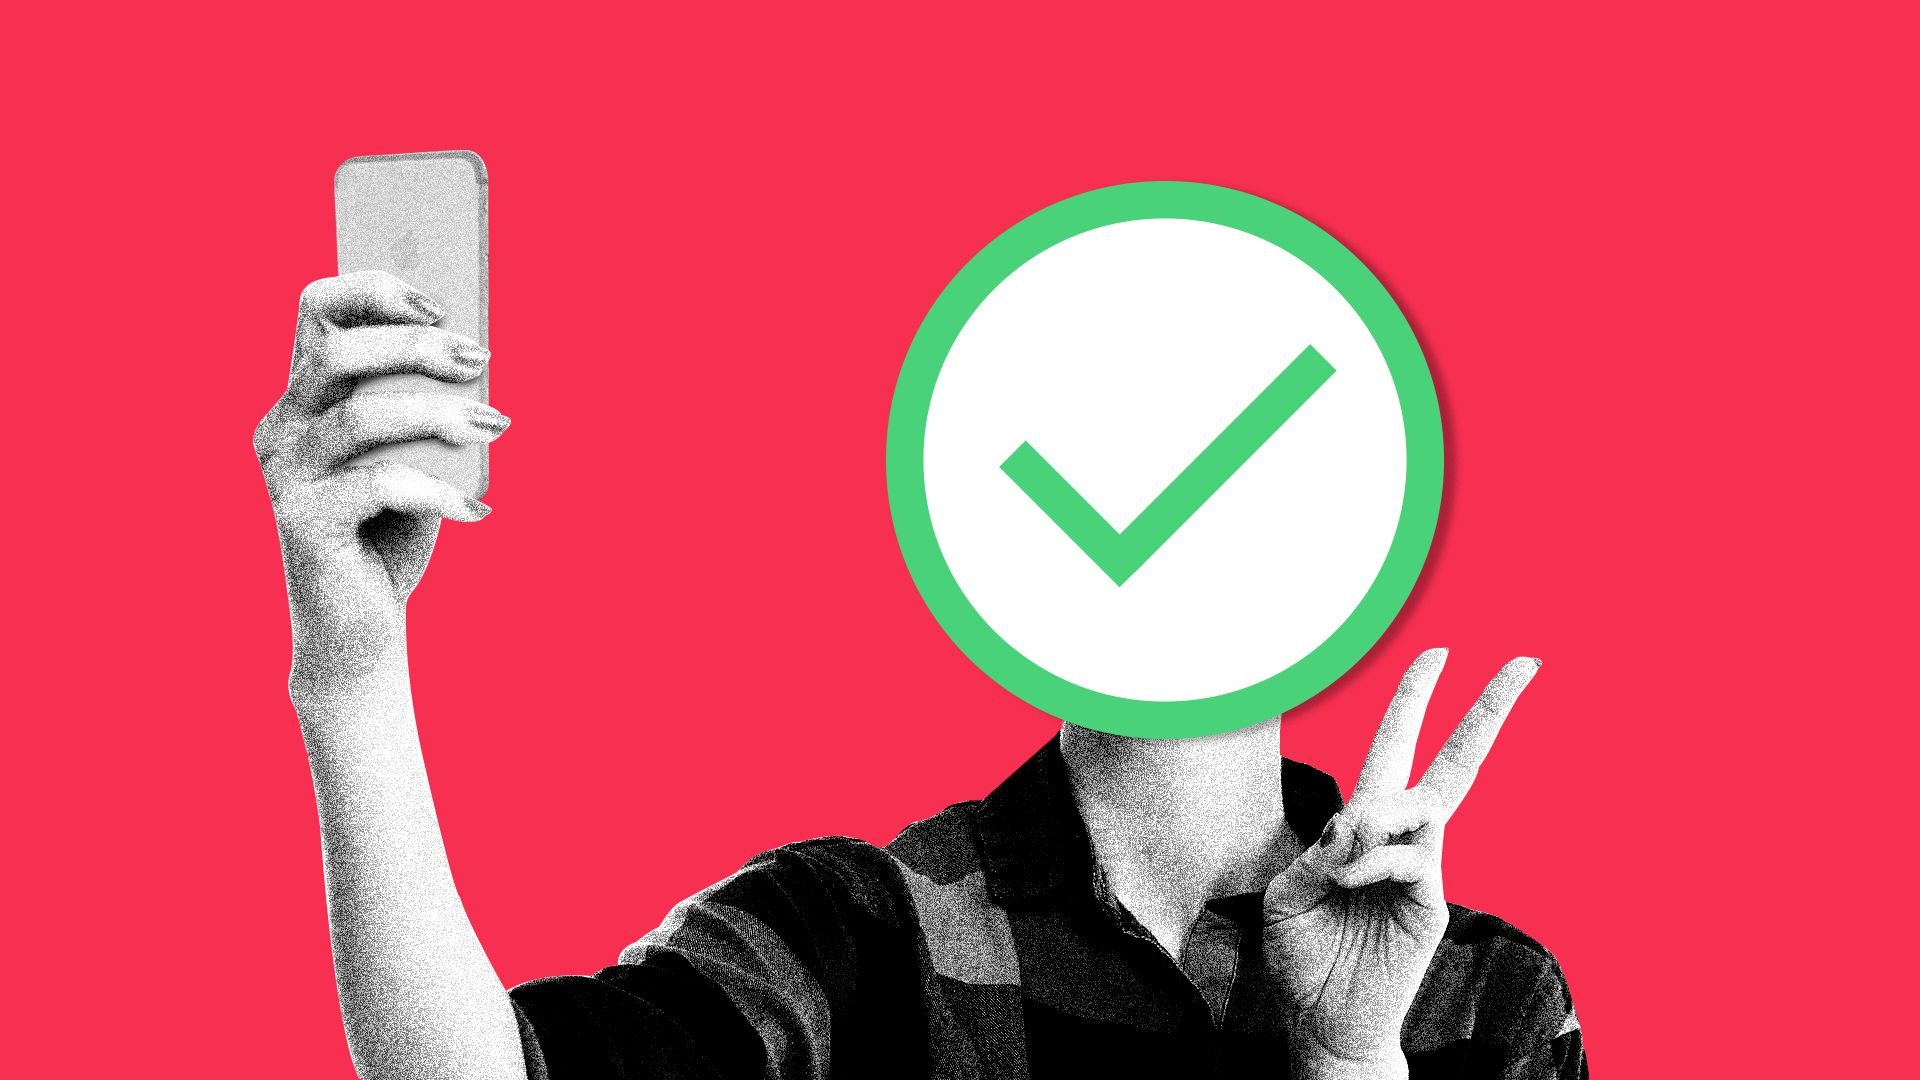 In this illustration, a green check mark is superimposed over a person's head as they take a selfie.